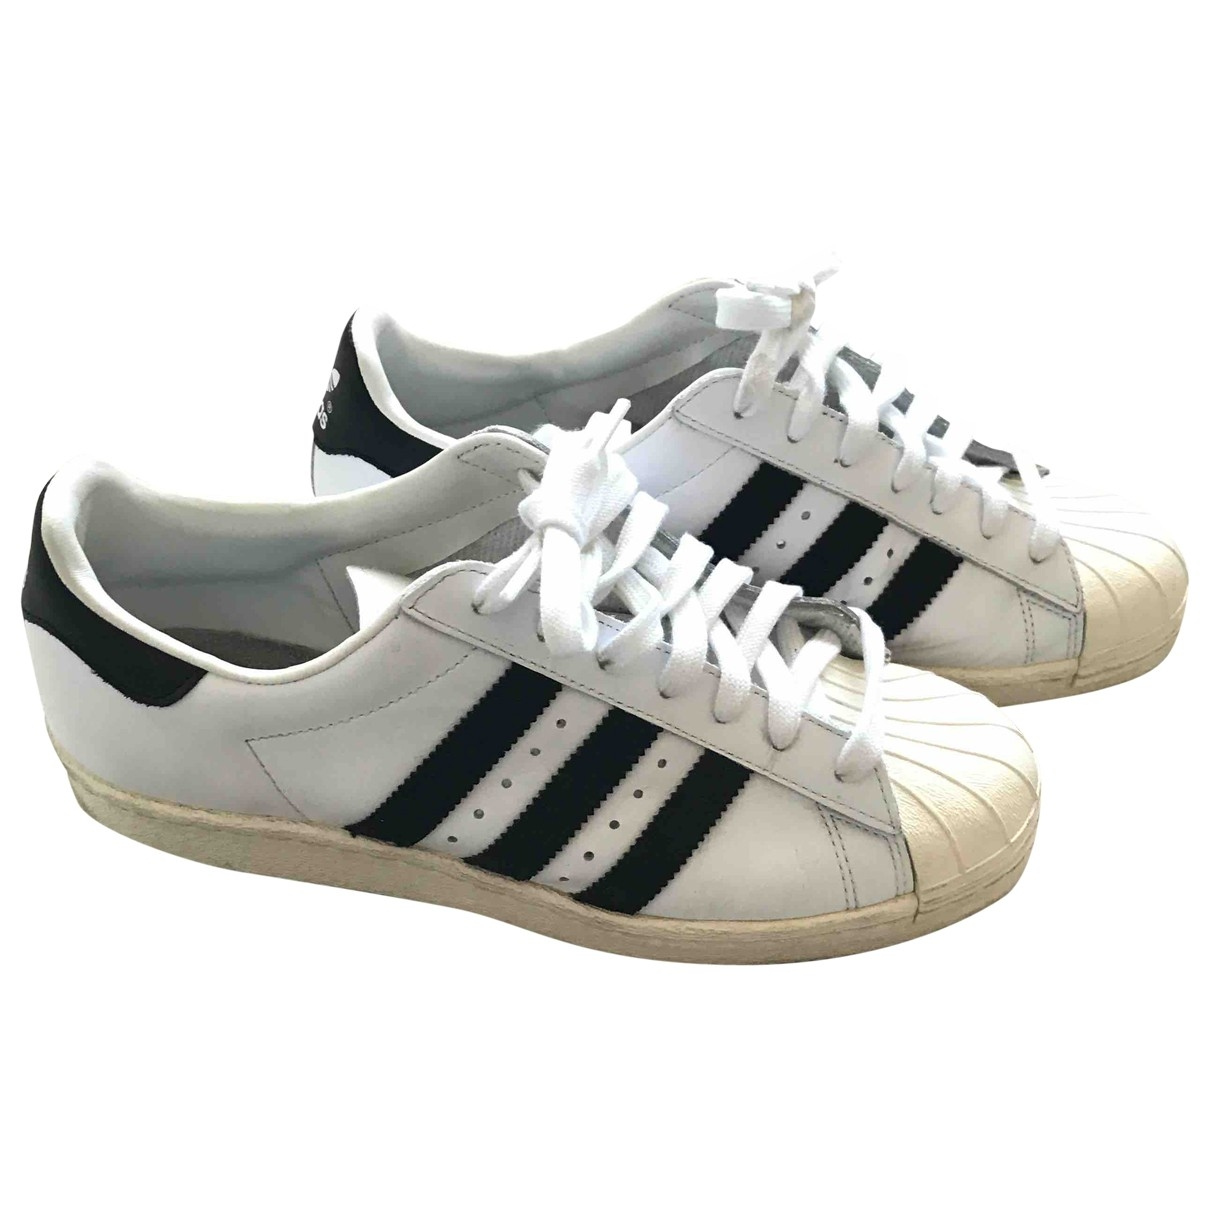 Adidas Superstar White Leather Trainers for Men 40.5 EU